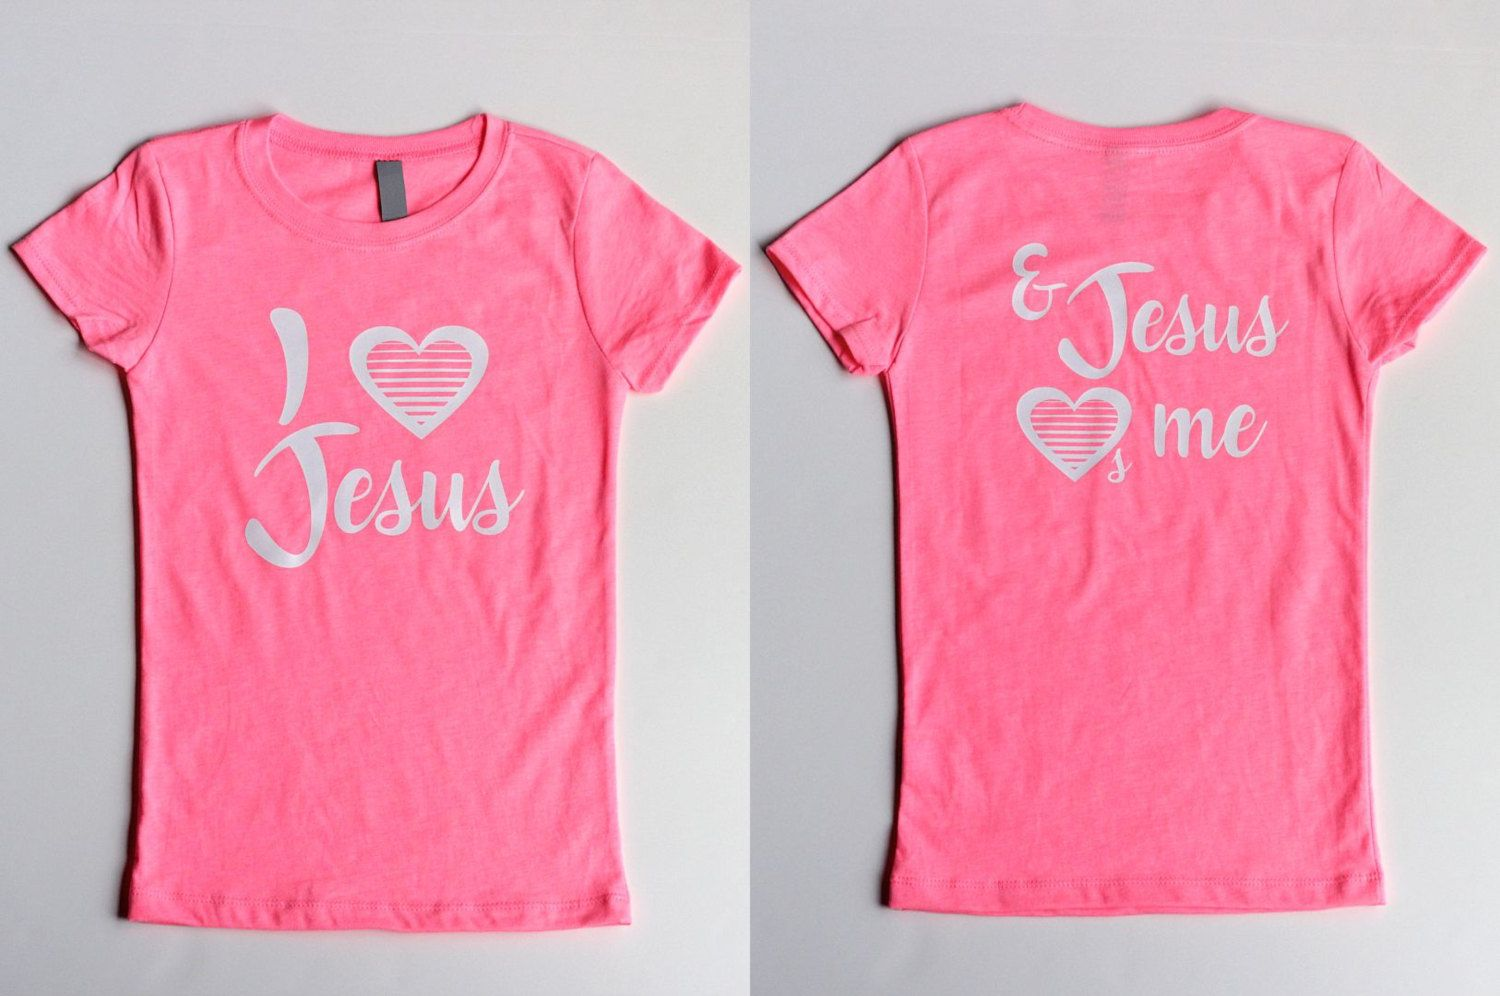 Jesus loves me shirts christian t shirts for girls christian shirts jesus loves me shirts christian t shirts for girls christian shirts birthday gifts for girls easter negle Gallery